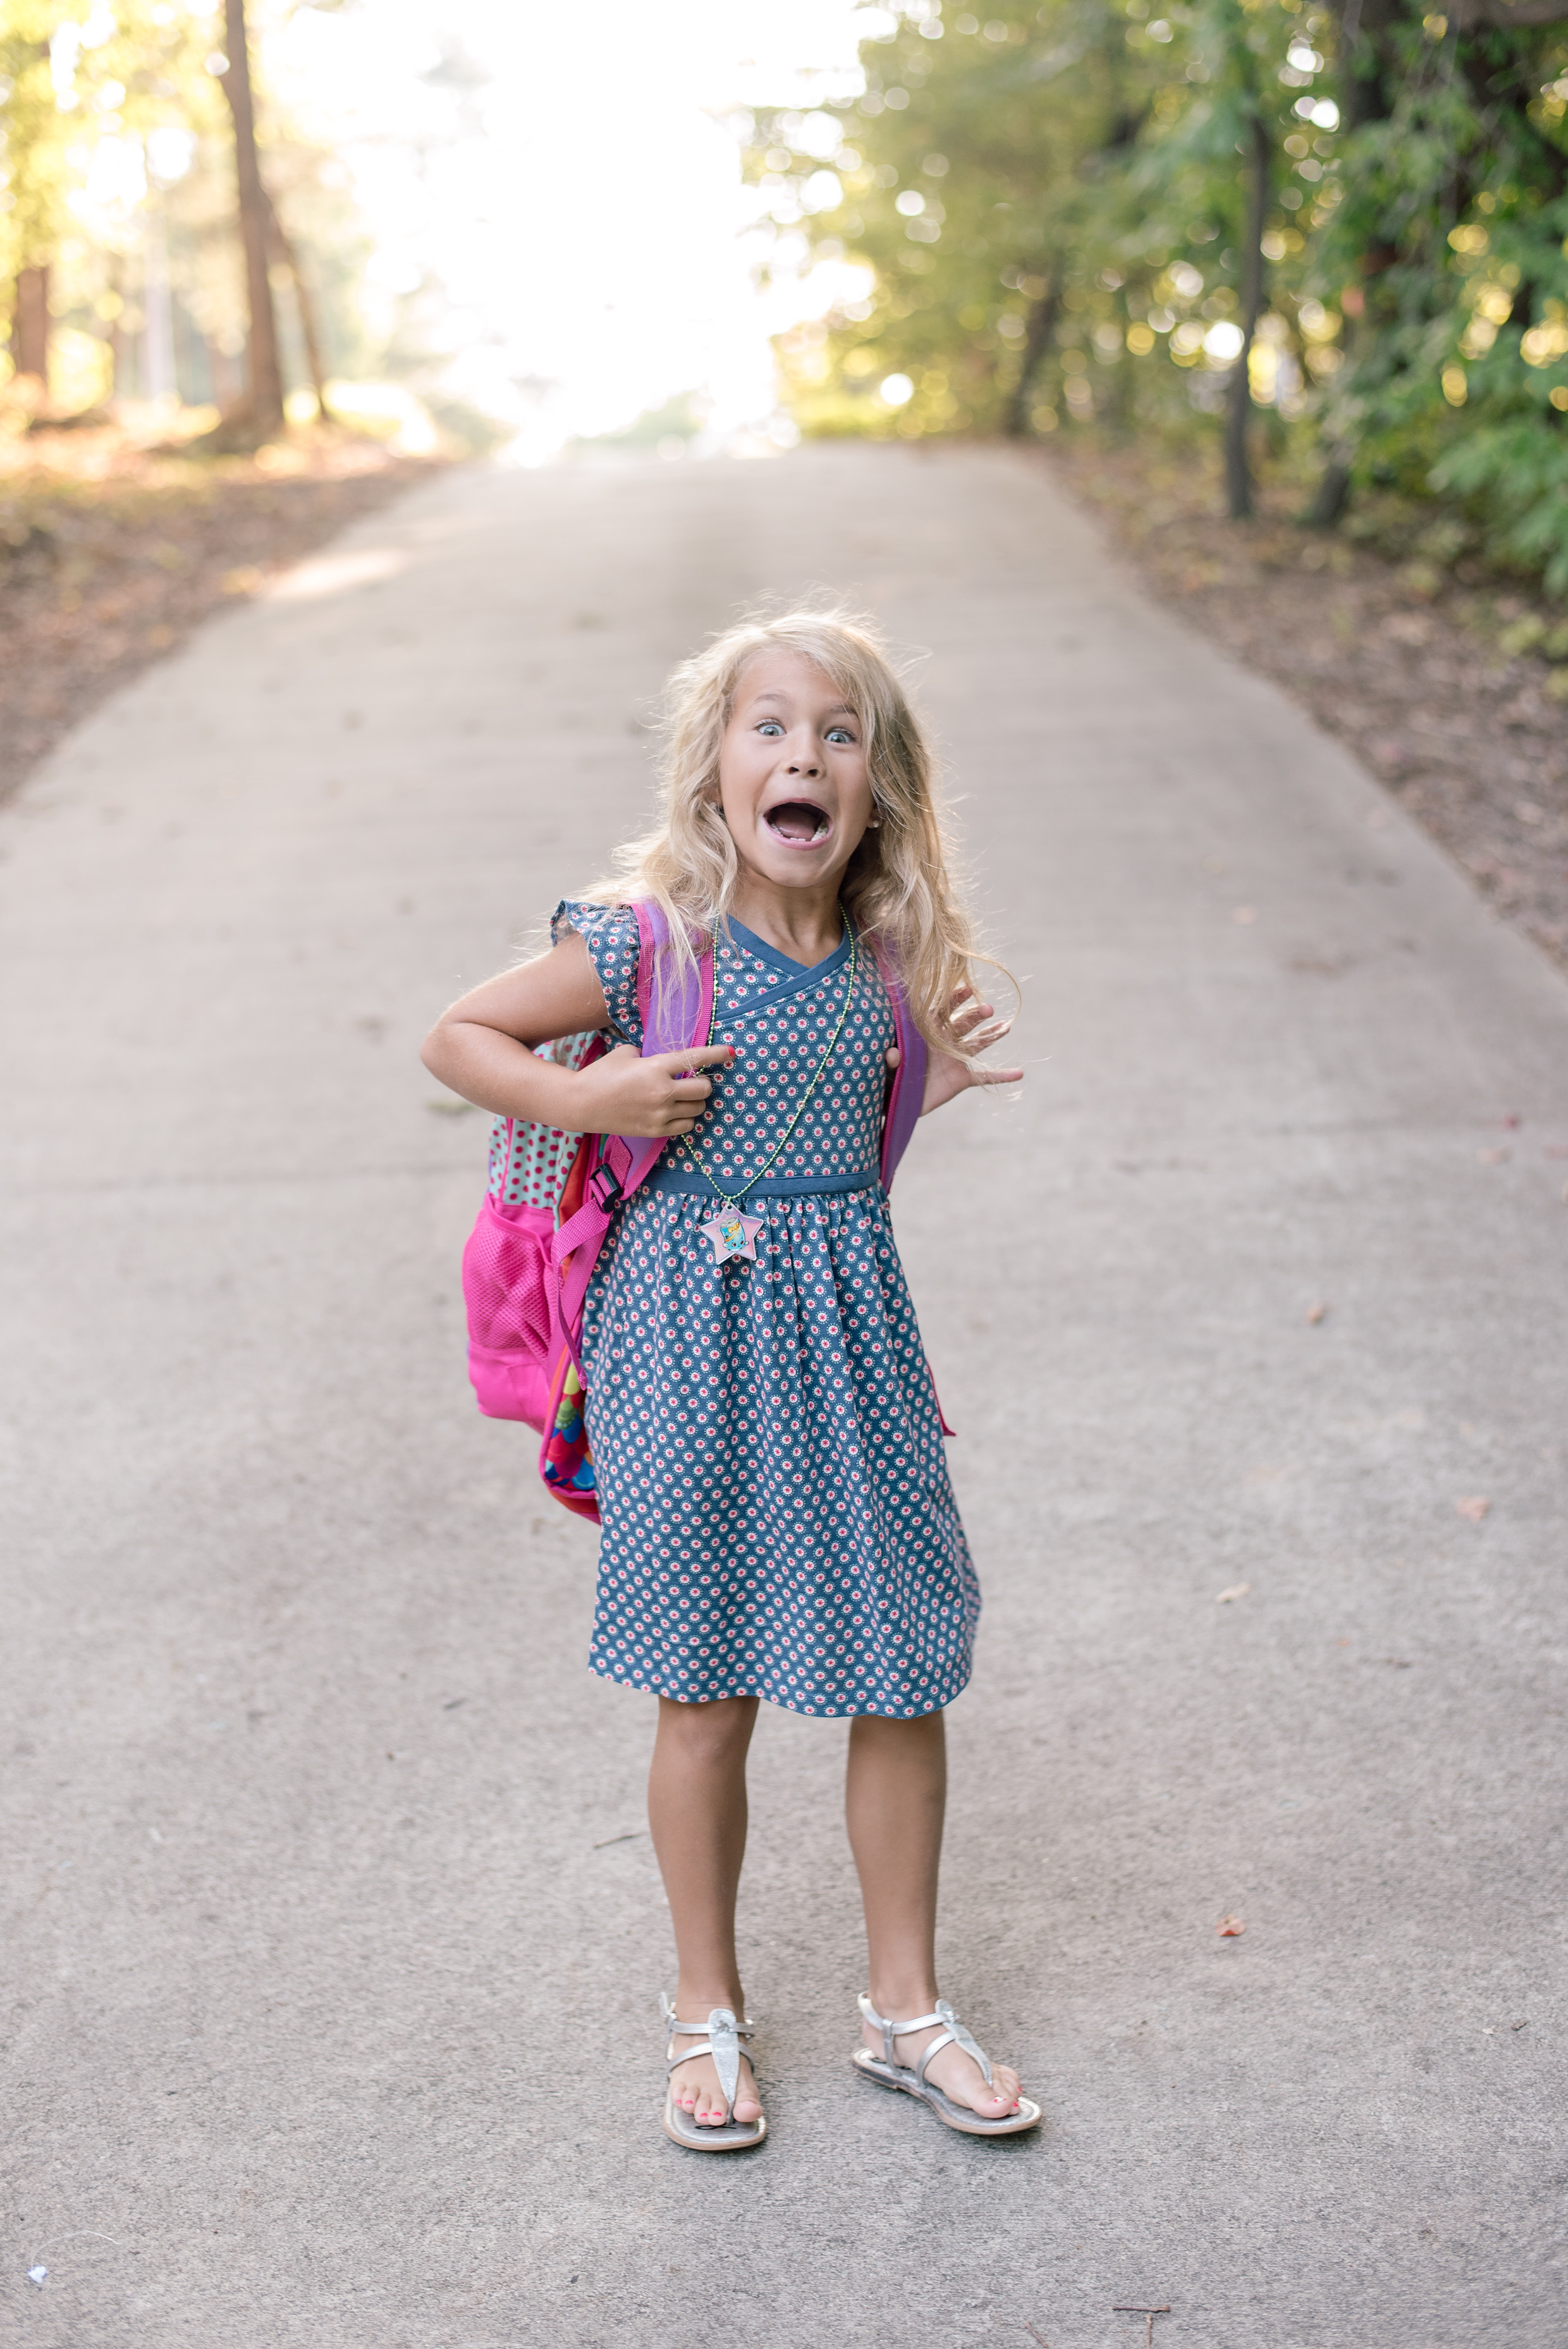 20150824-Cailee 1st Grade-12-Edit-2480x3715